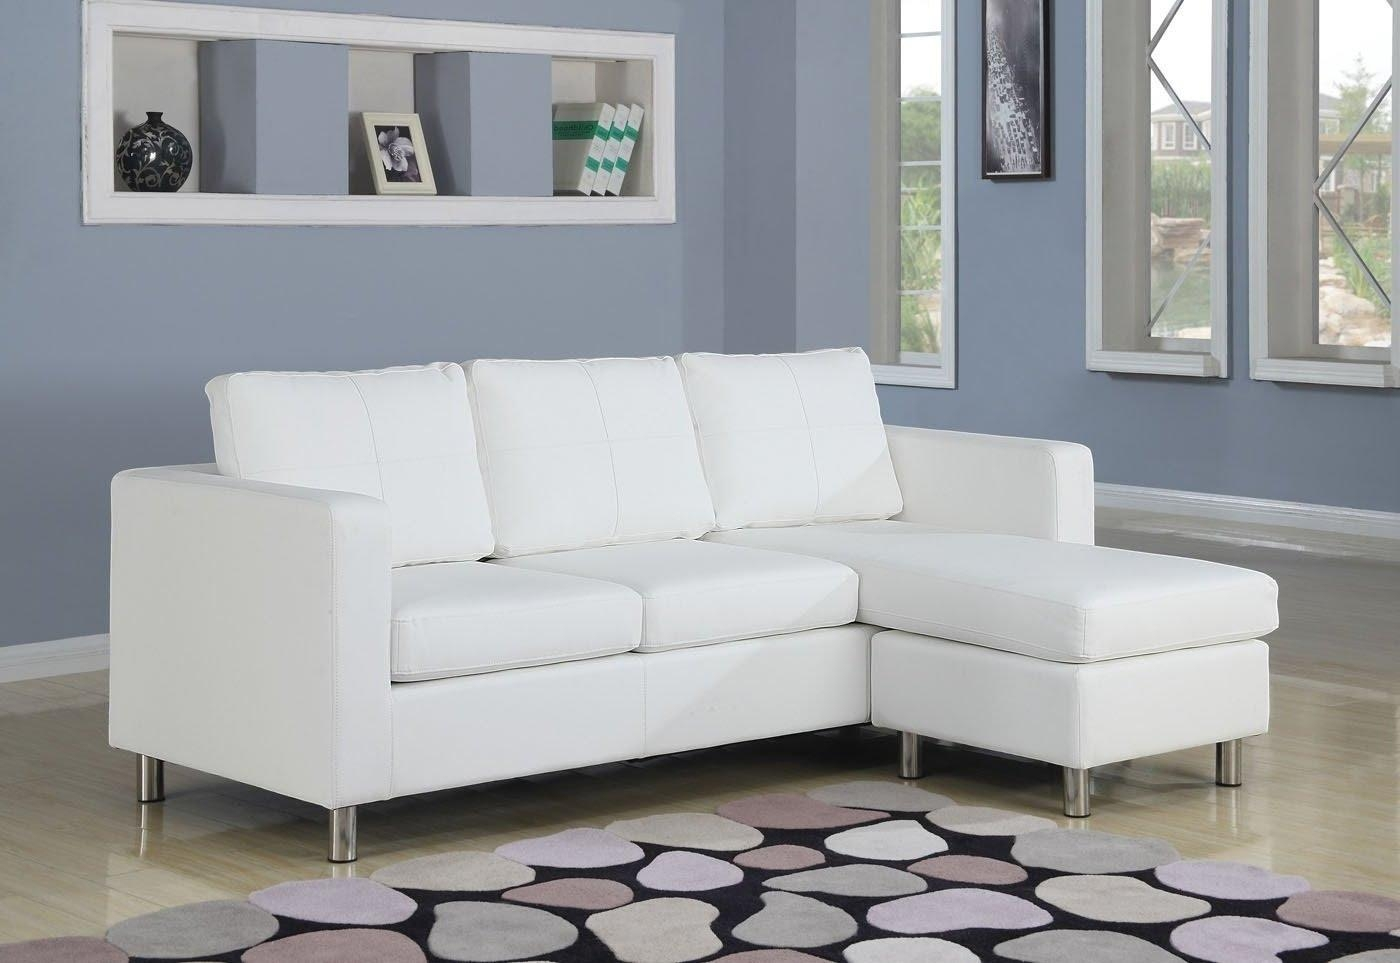 Sofa : Awesome Sectional Sleeper Sofa Small Spaces Home Design Intended For Sectional Small Spaces (View 8 of 20)